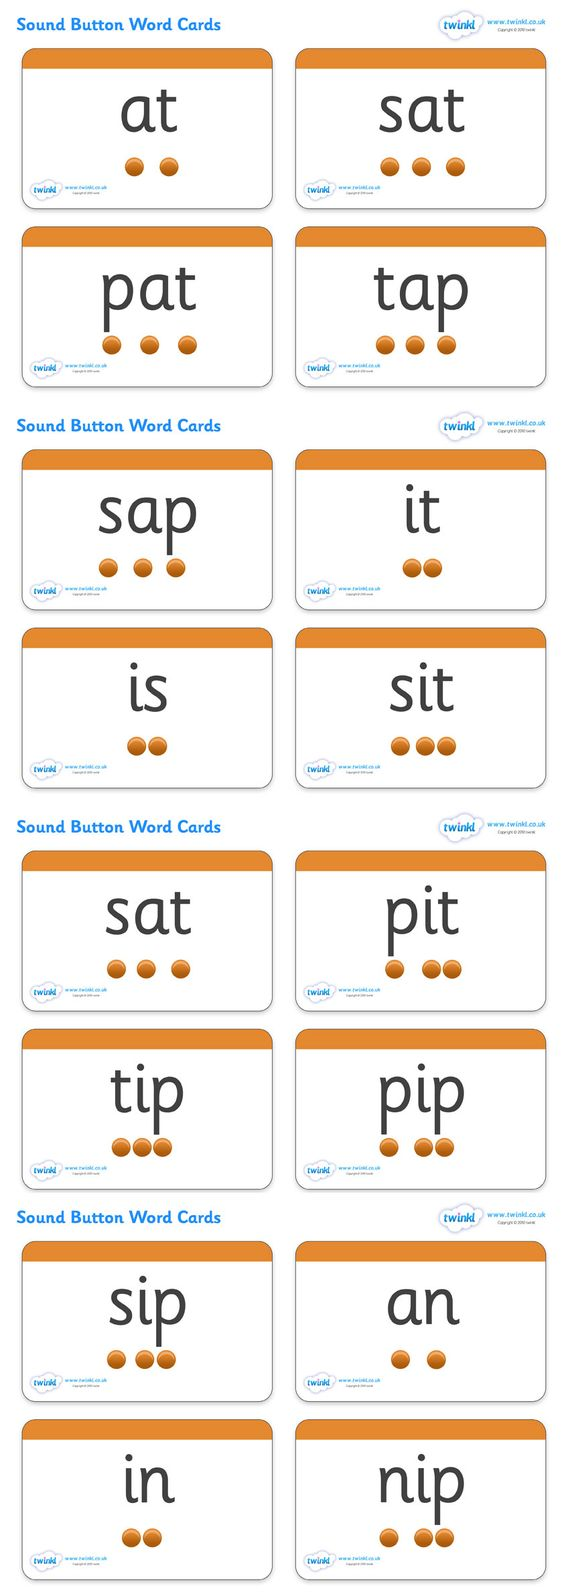 Worksheet Ng Words For Kids pinterest the worlds catalog of ideas phase 2 sounds button word cards pop over to our site at www twinkl